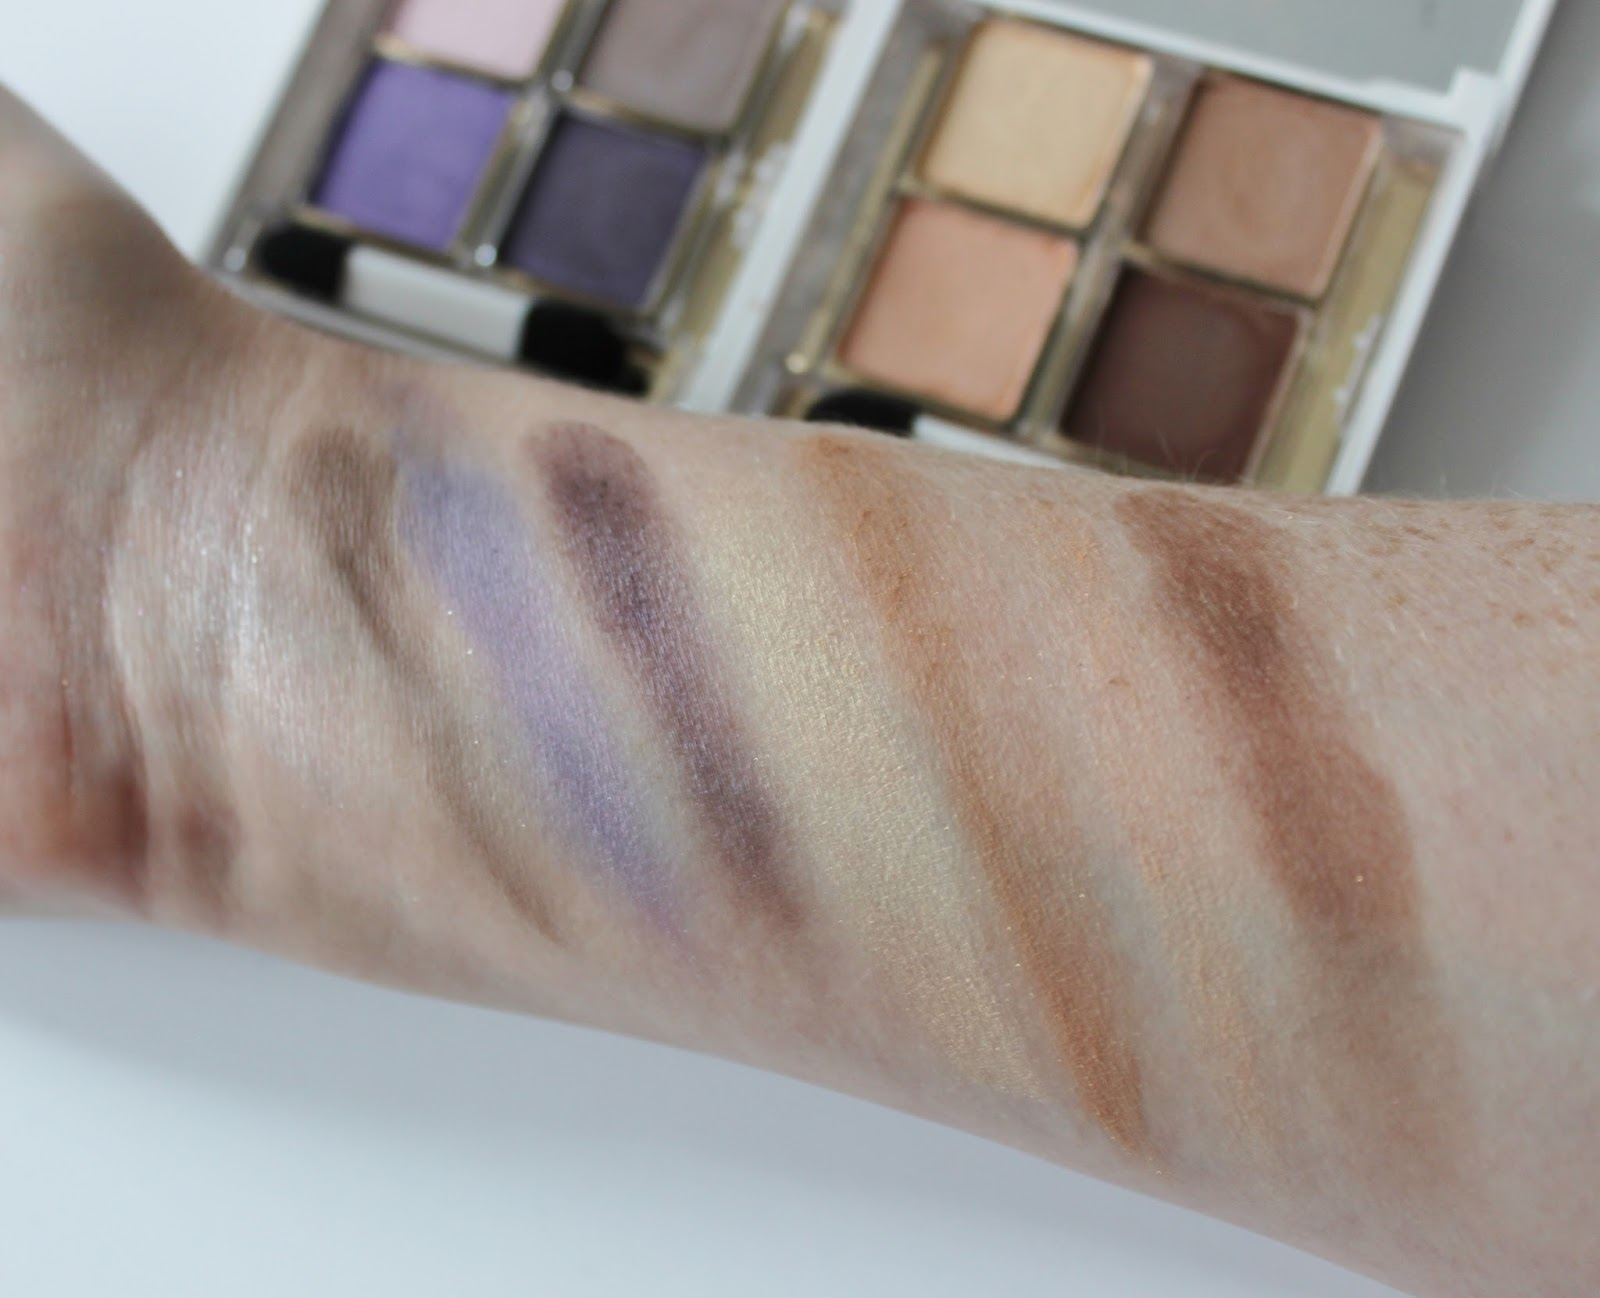 Elizabeth Arden untold aw14 makeup launches eyeshadow quad swatches